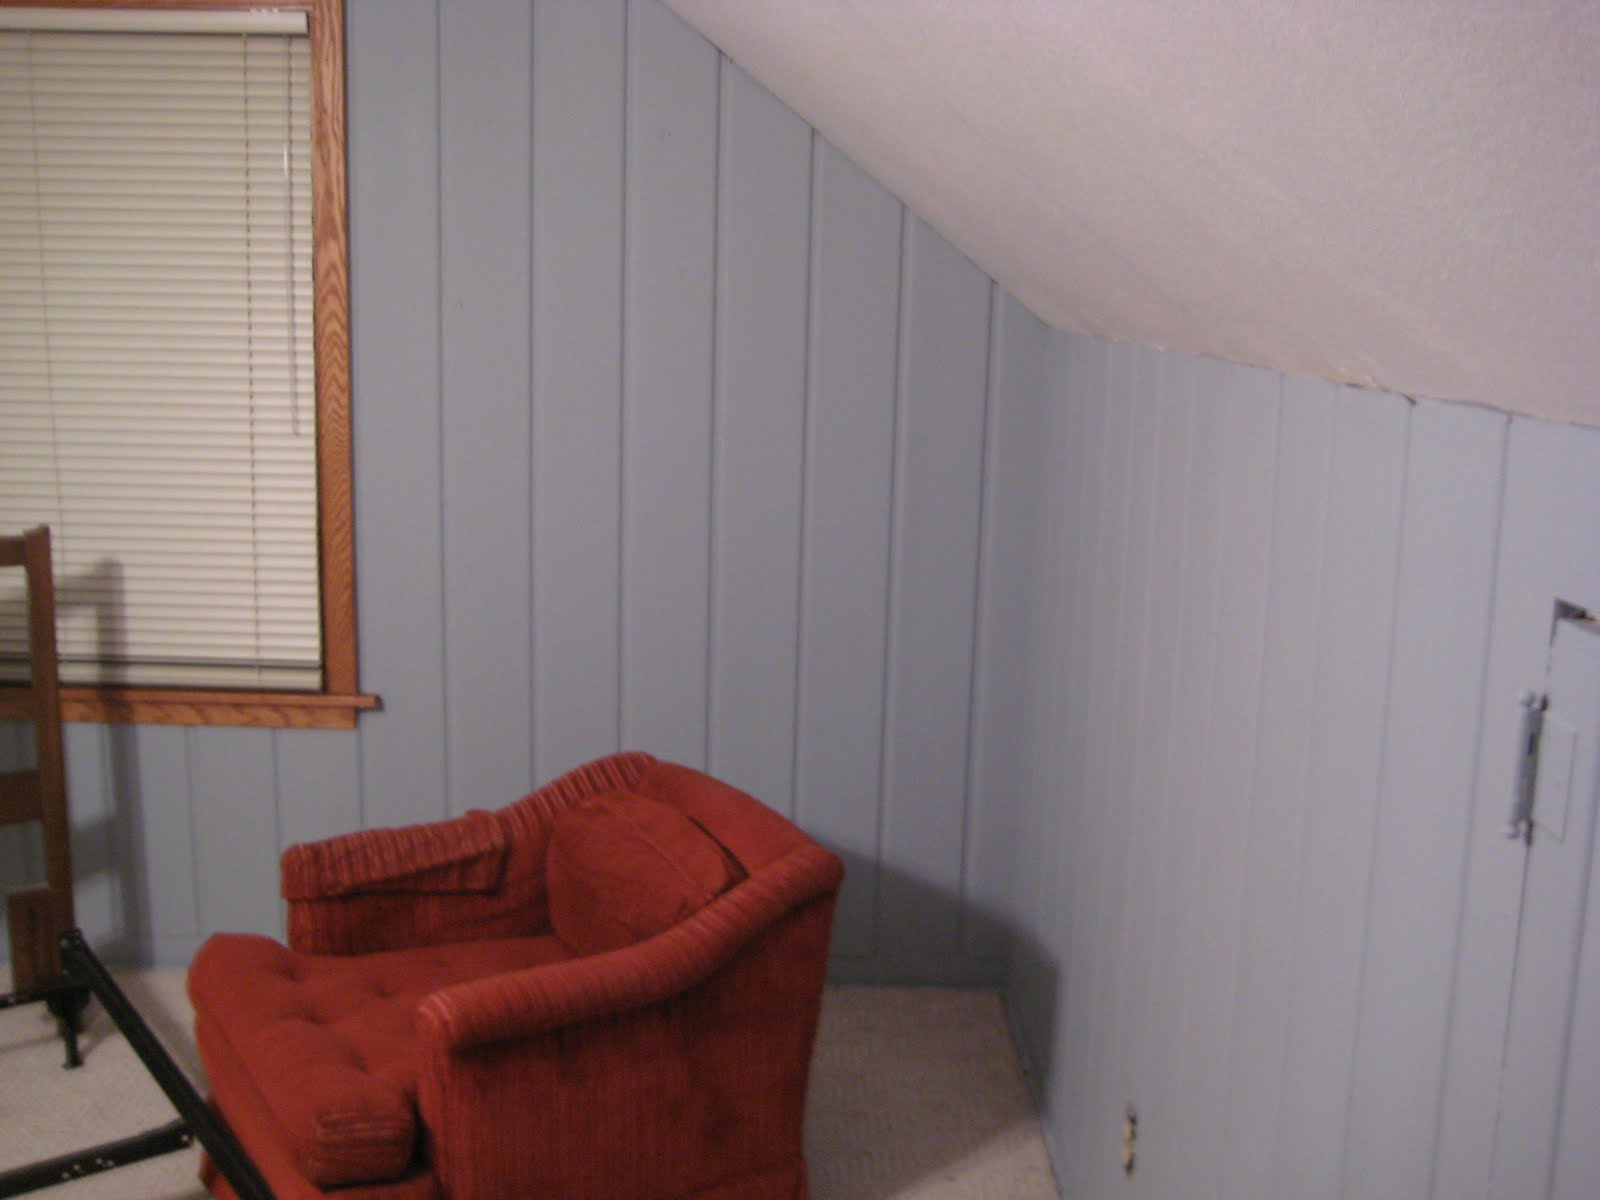 Painting over paneling casual cottage How to cover old wood paneling